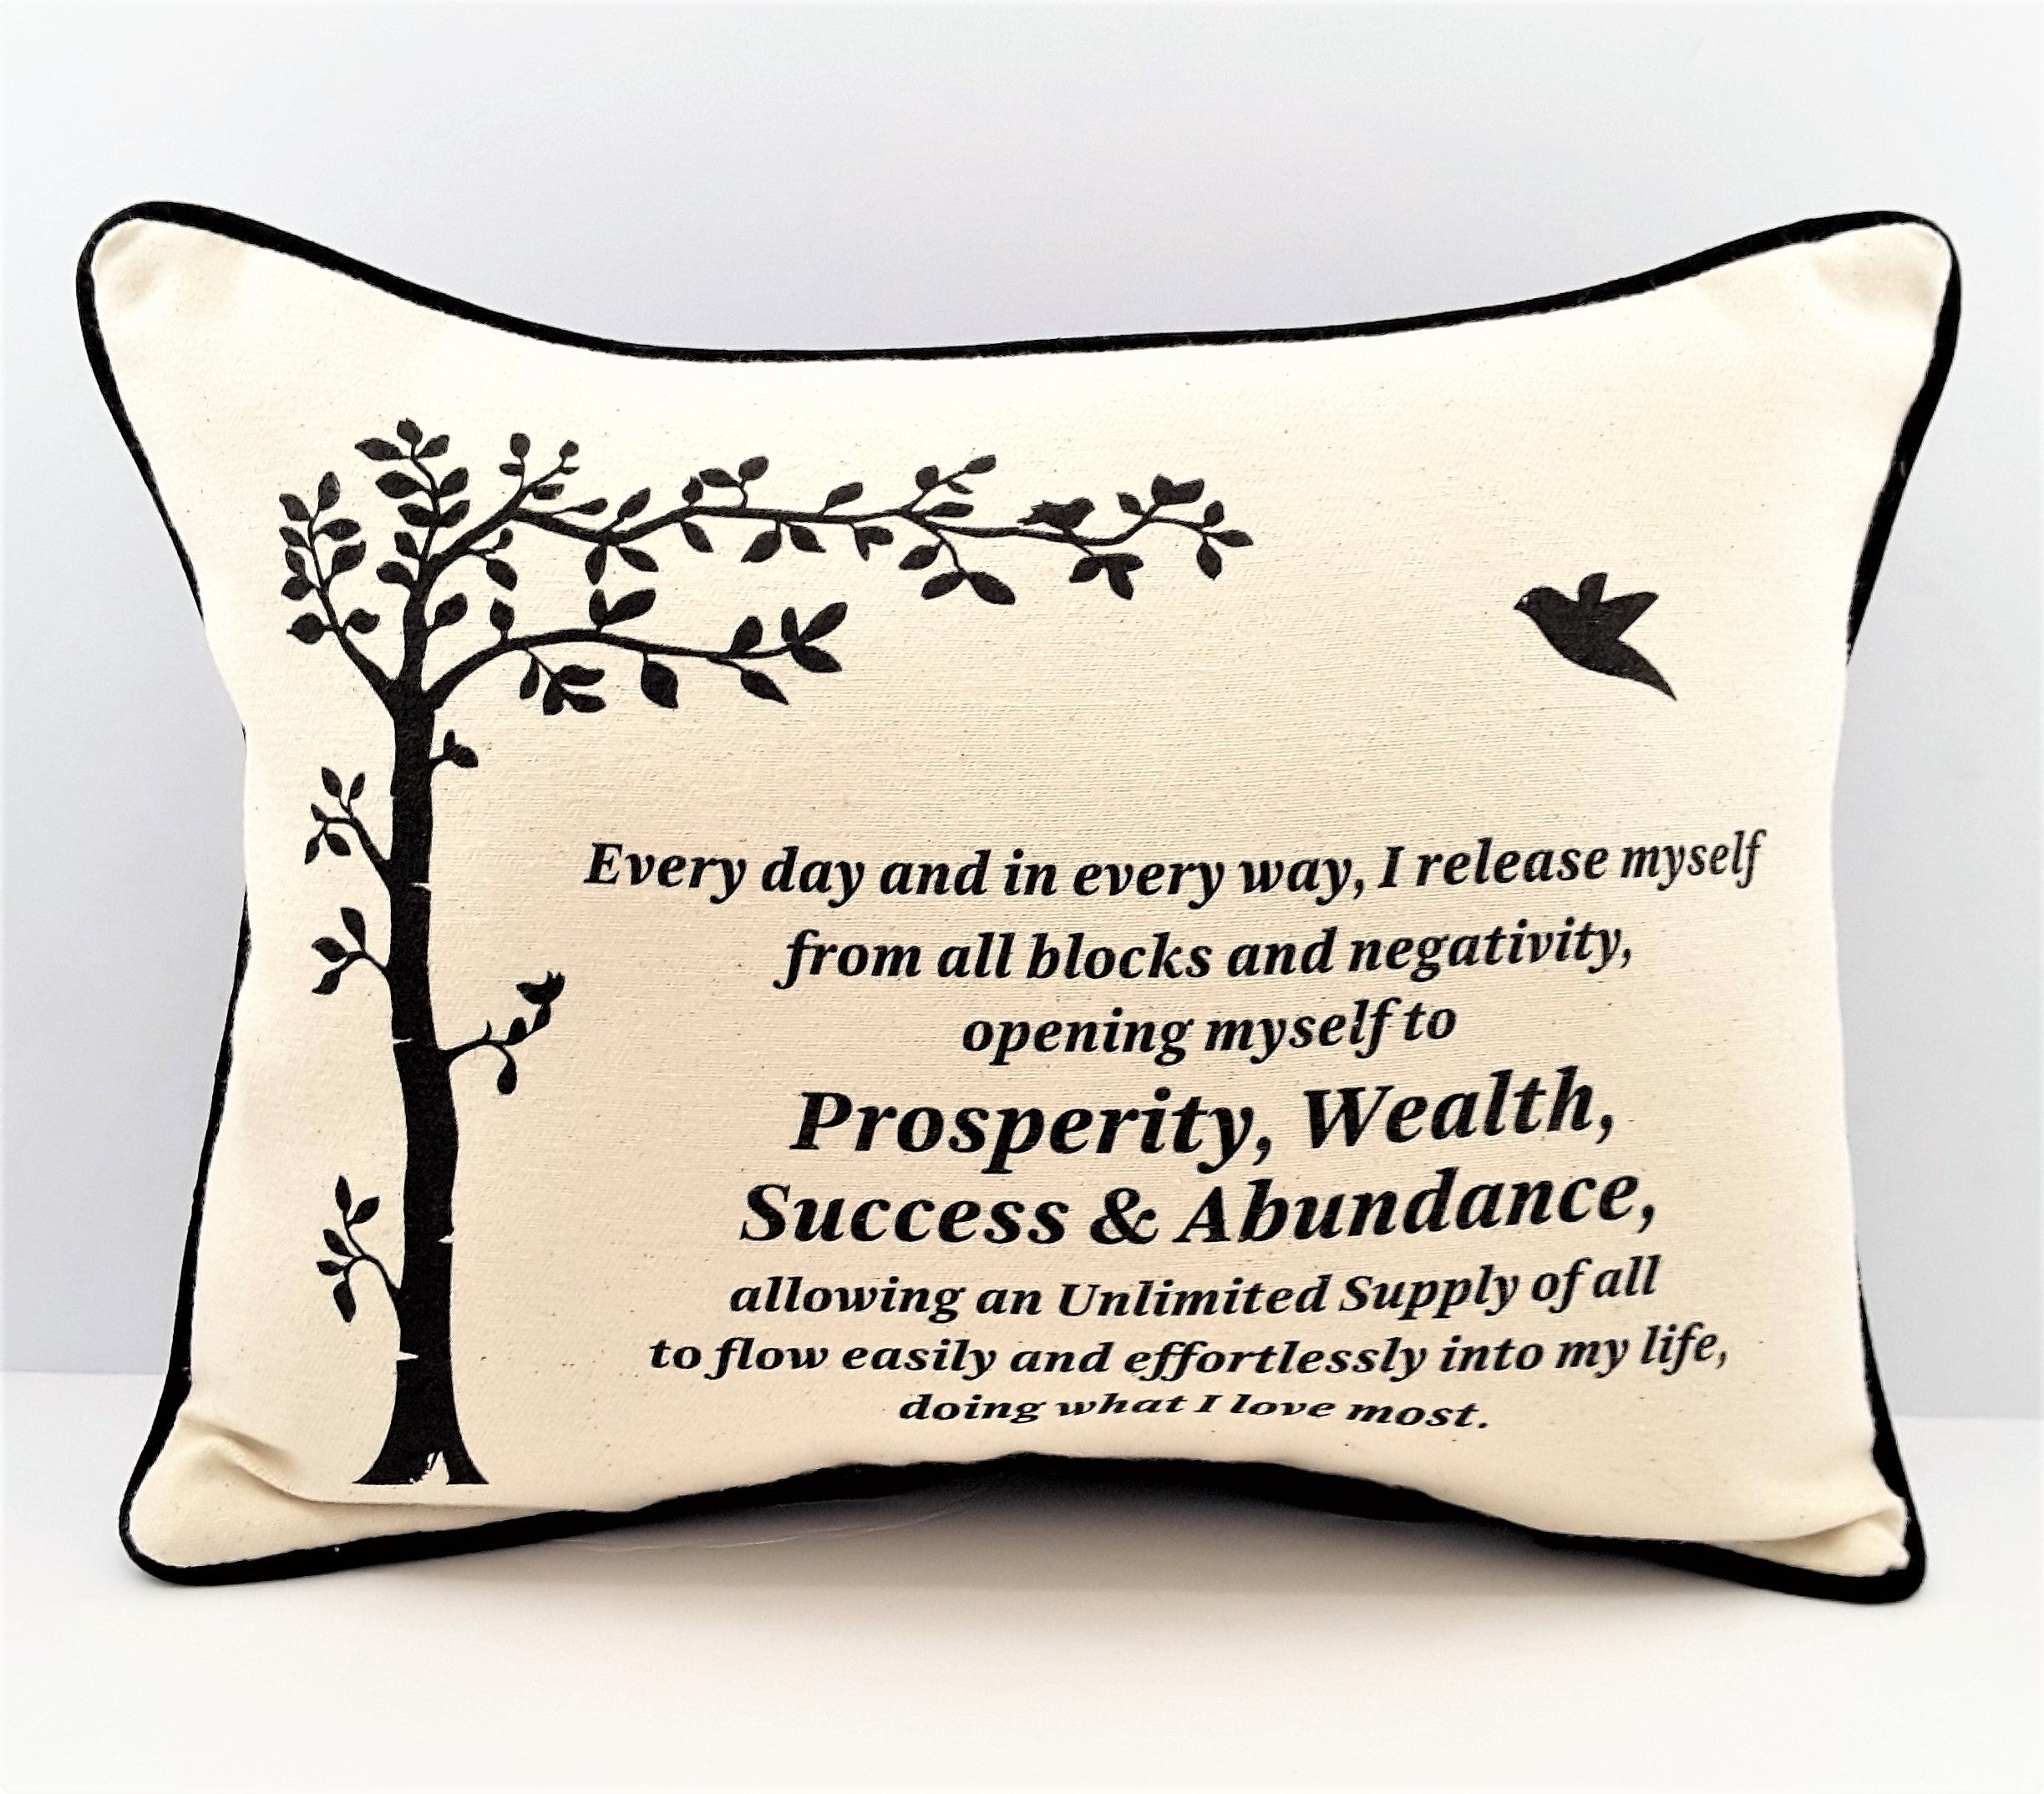 Prosperity Affirmation Pillow Cover with pocket - TheLastWordBish.com